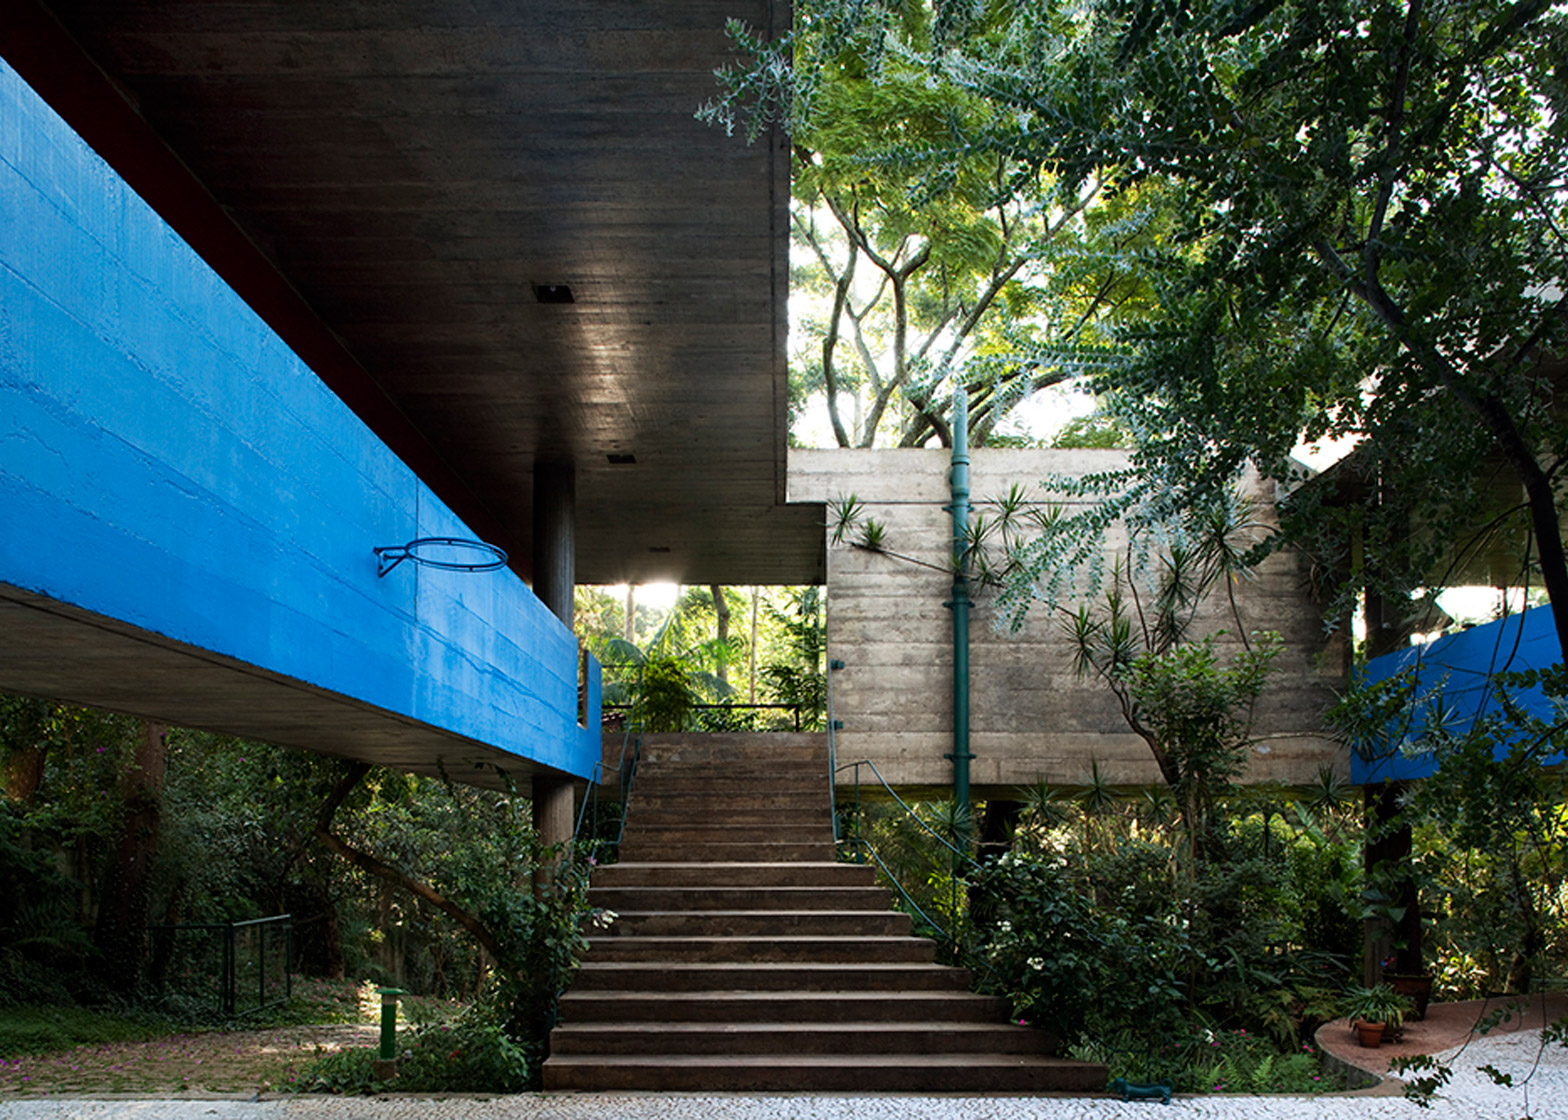 james-king-house_sao-paulo-mendes-da-rocha_photograph_leonardo-finotti_8